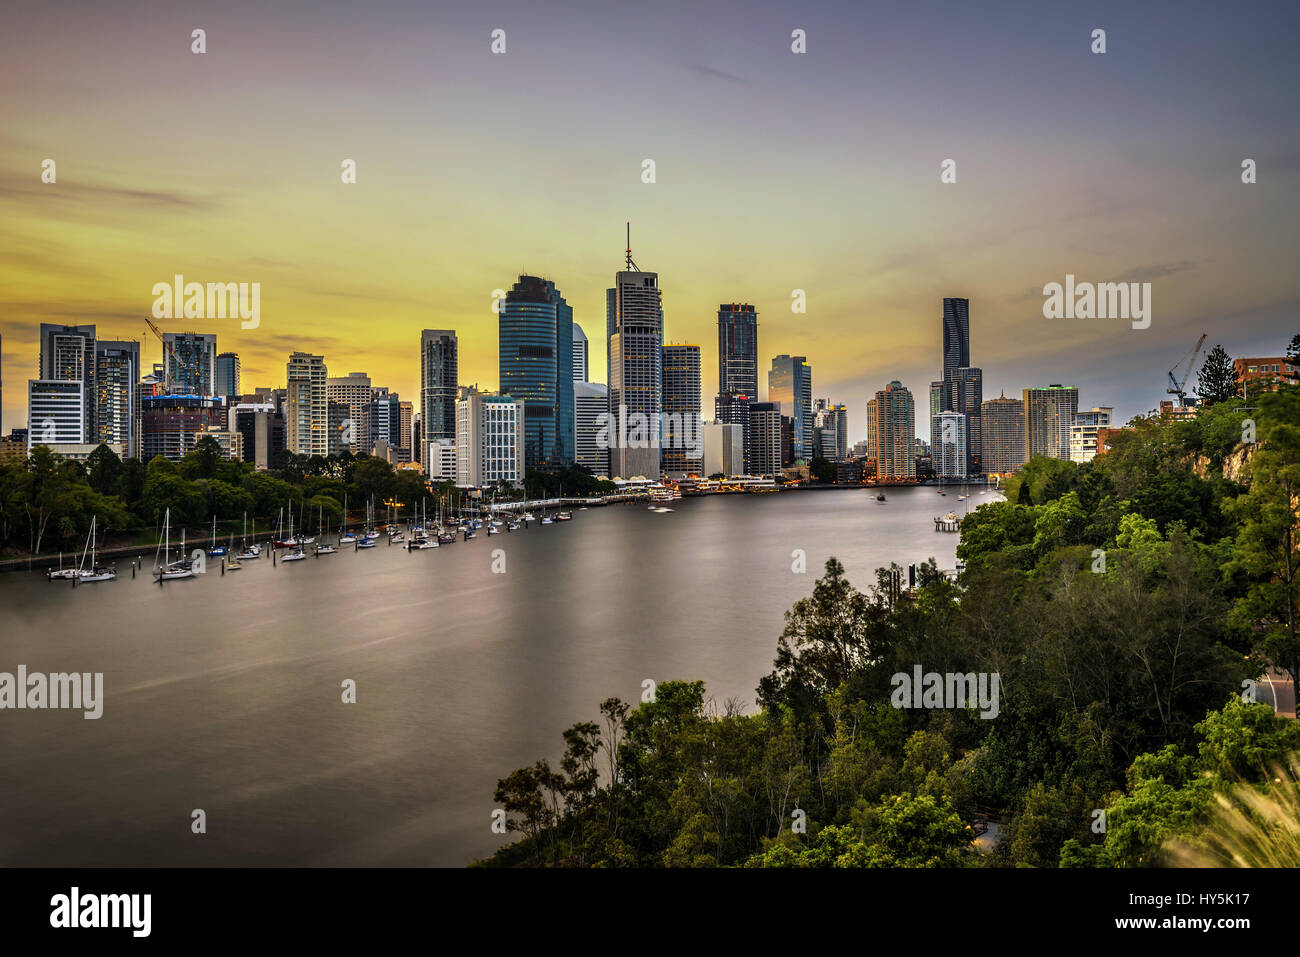 Sunset skyline of Brisbane city and Brisbane river  from Kangaroo Point Cliffs, Queensland, Australia. Long exposure. - Stock Image